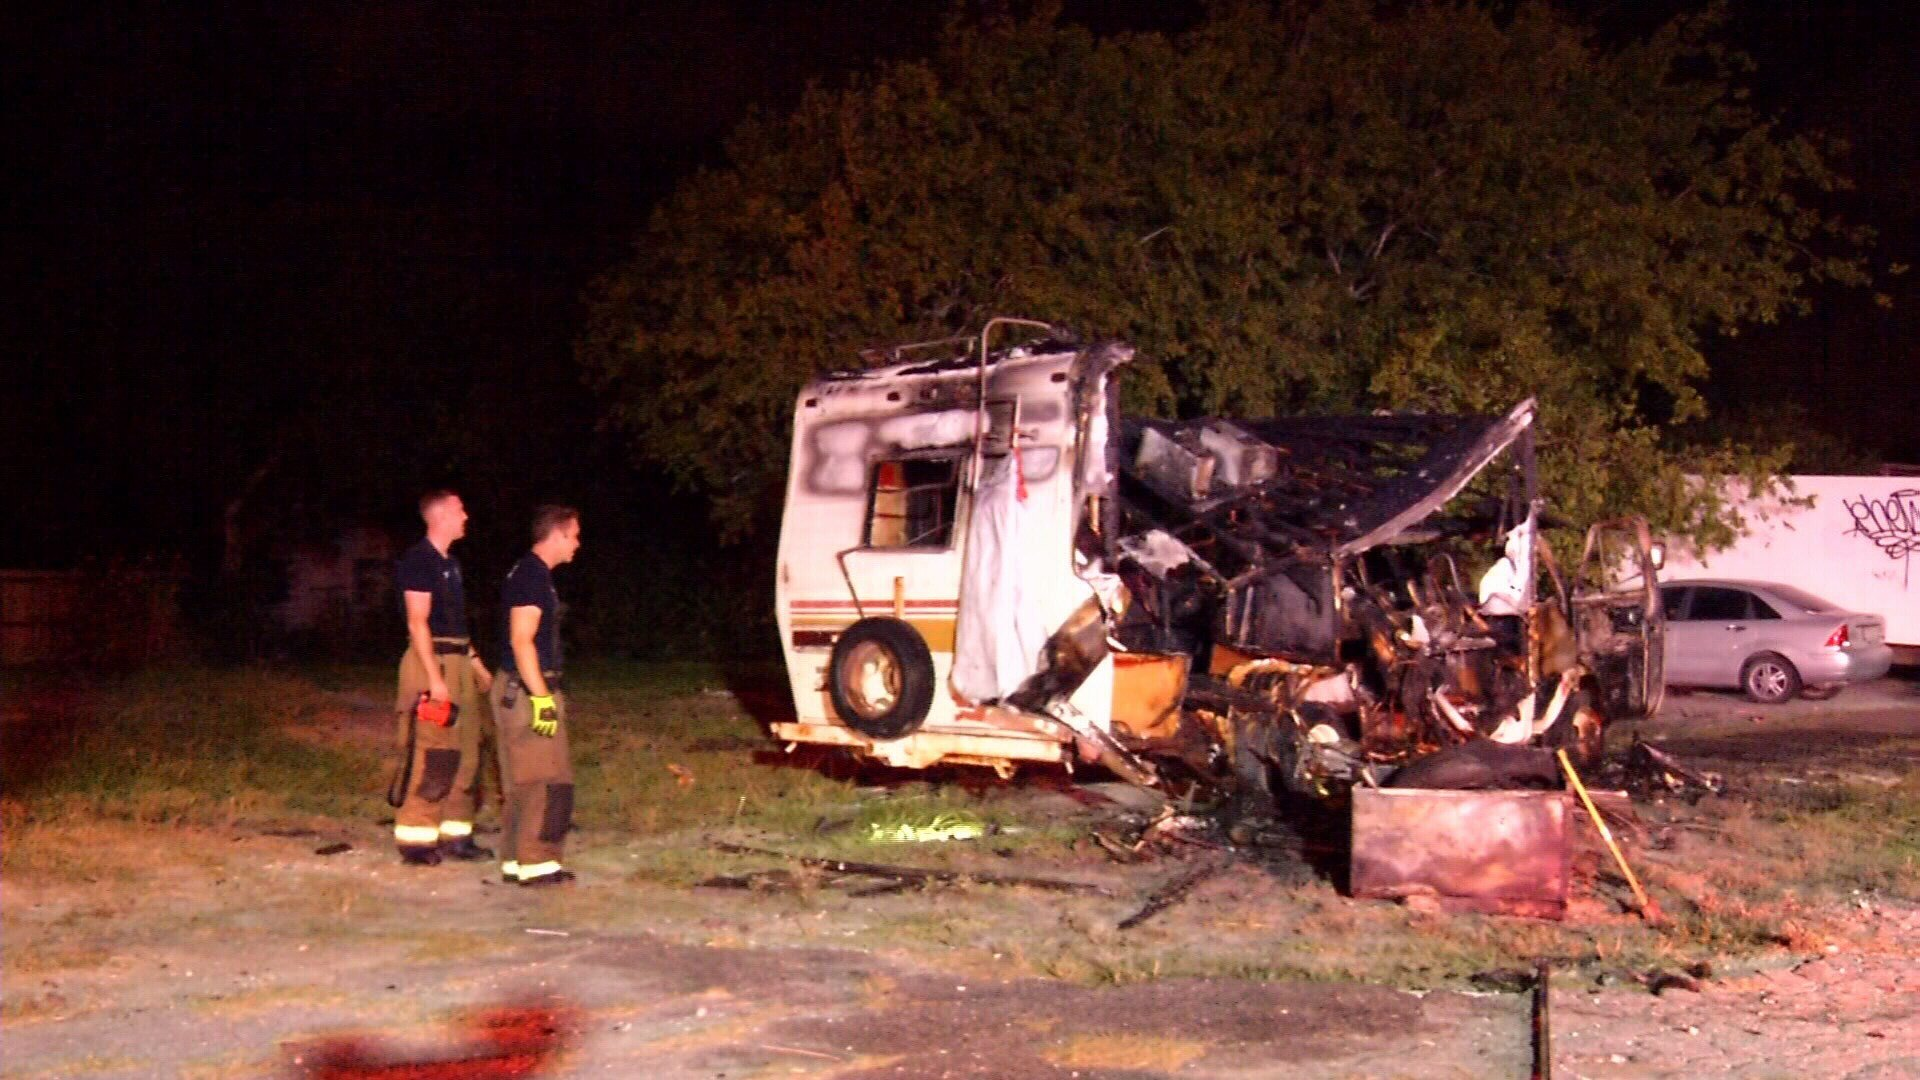 An RV was completely destroyed in an overnight fire.